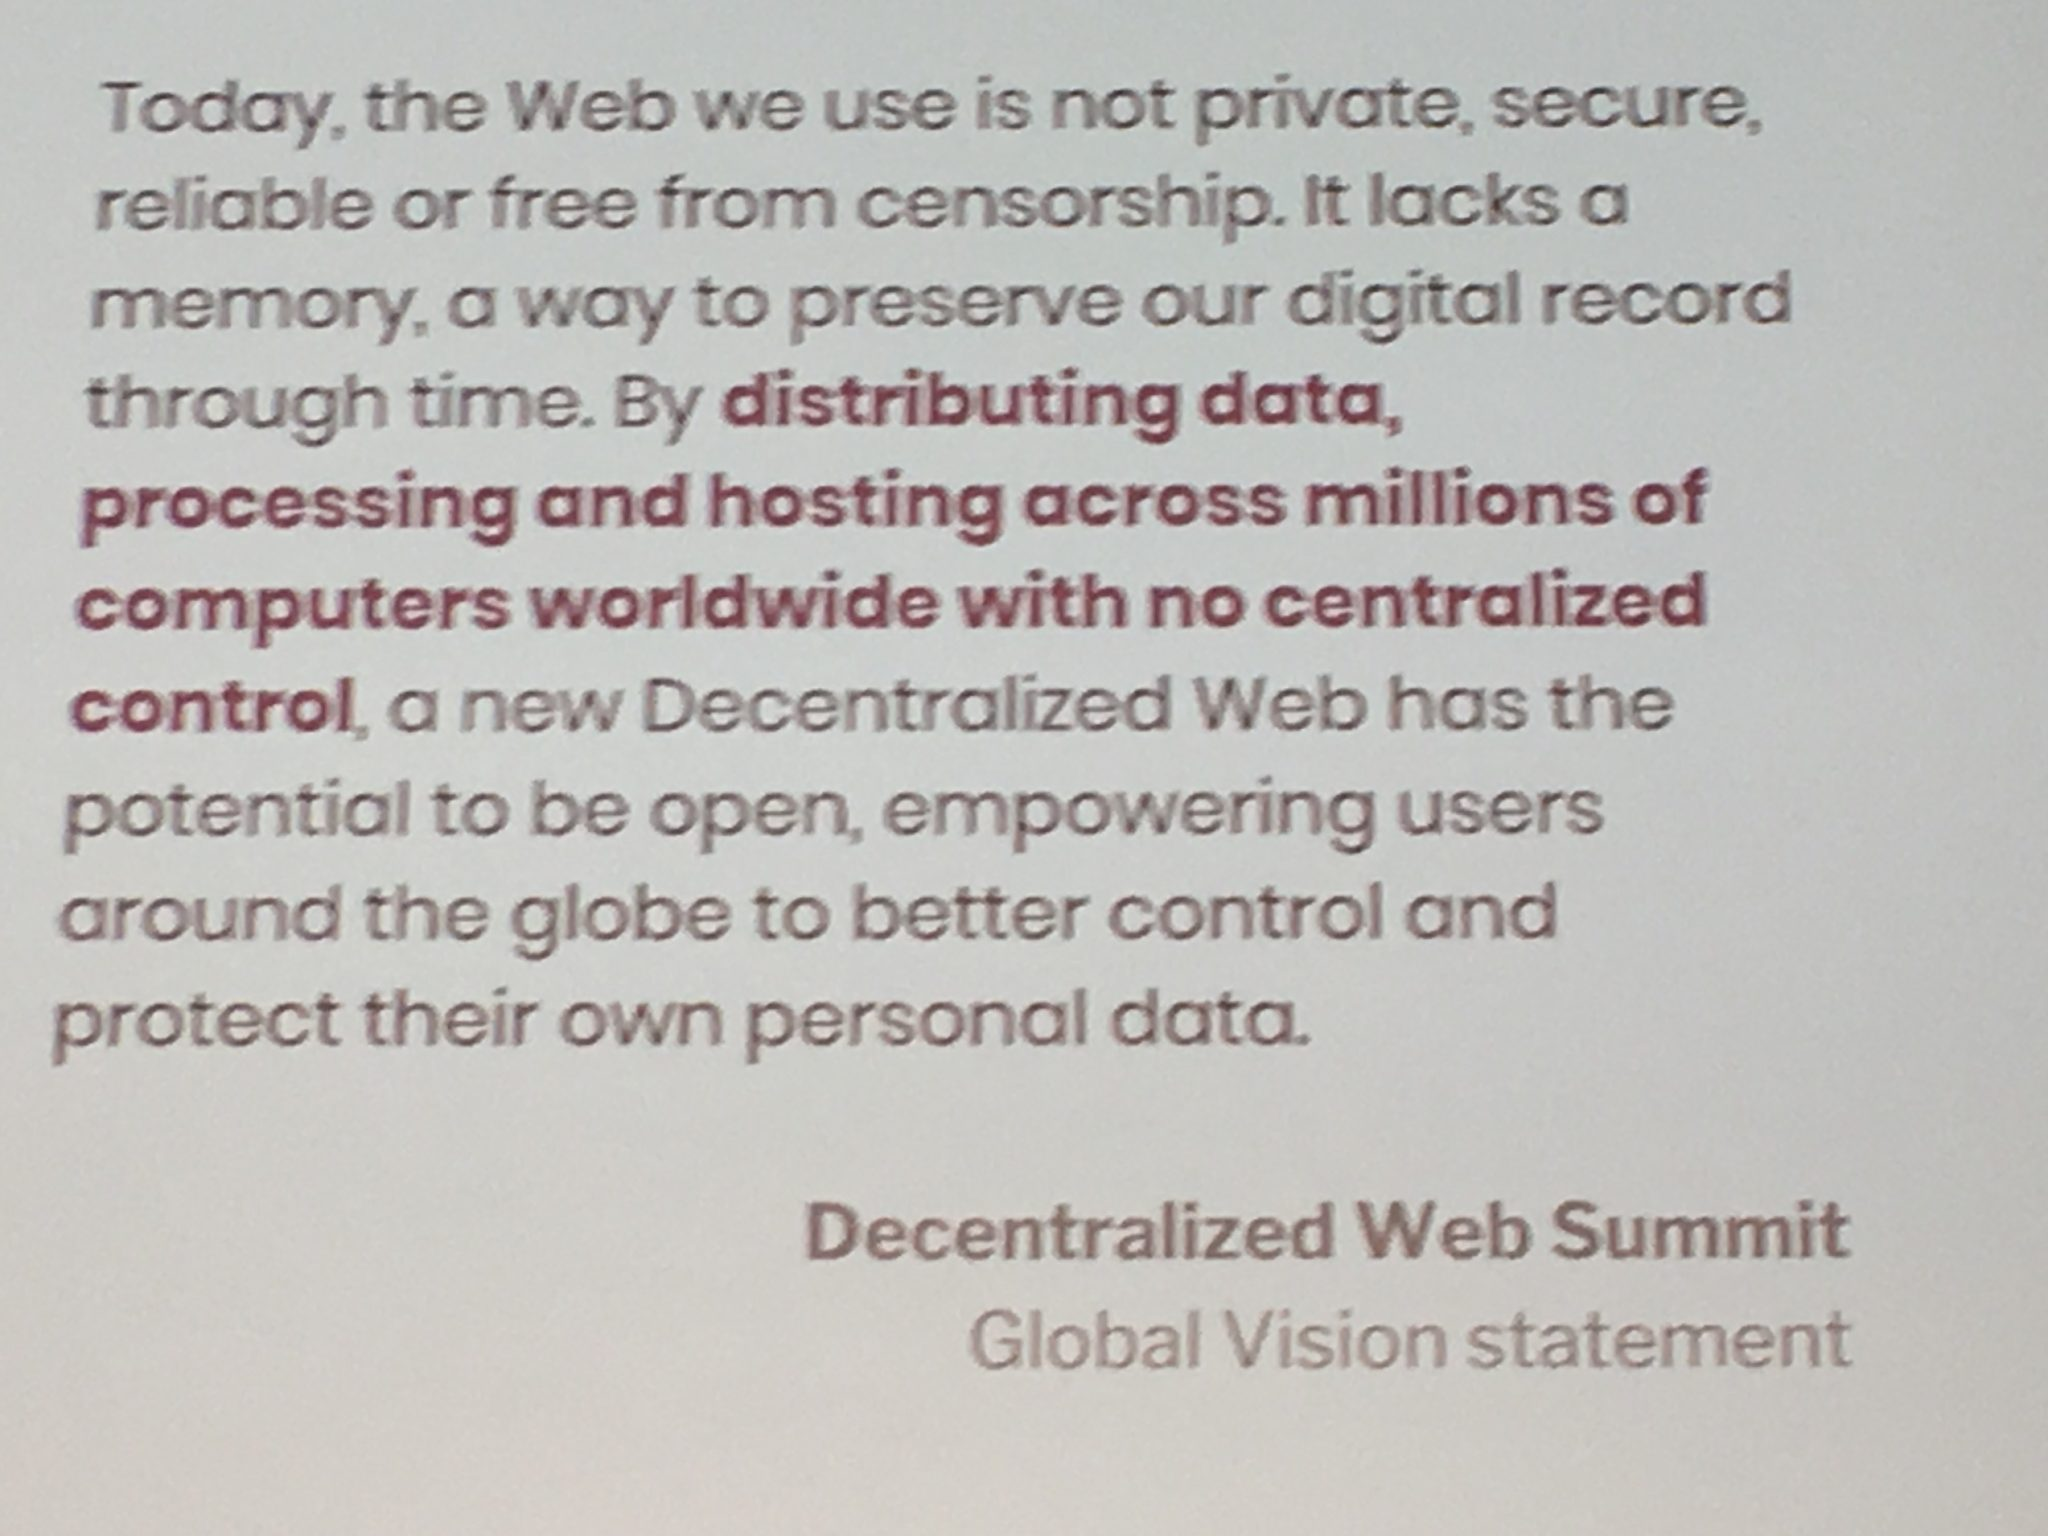 Decentralized Webe